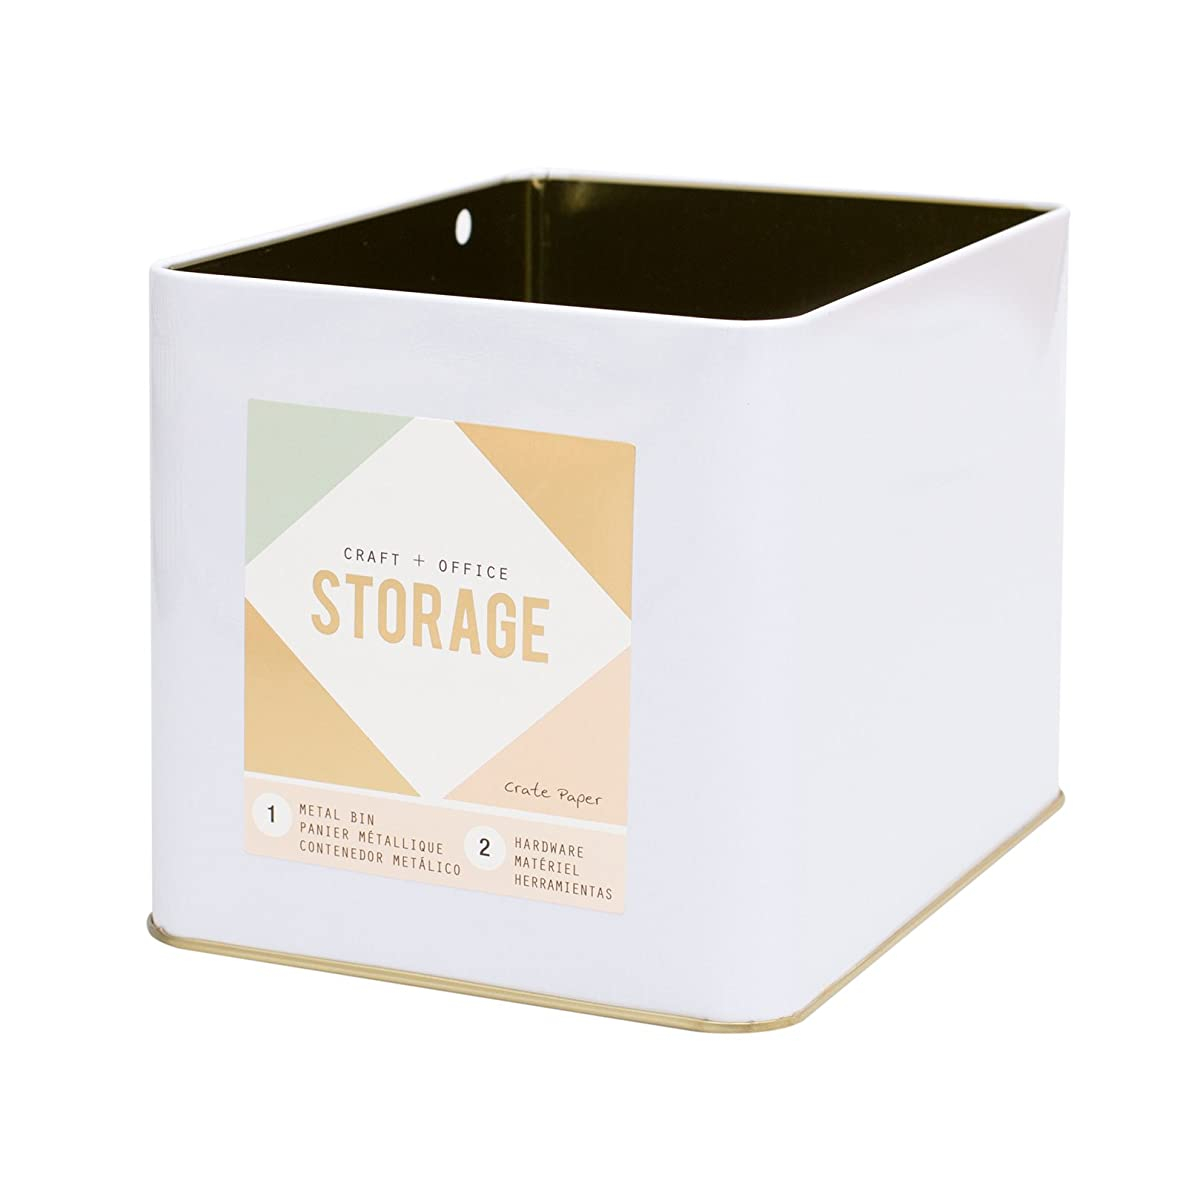 American Crafts Crate Paper Wire System Storage Large Bin